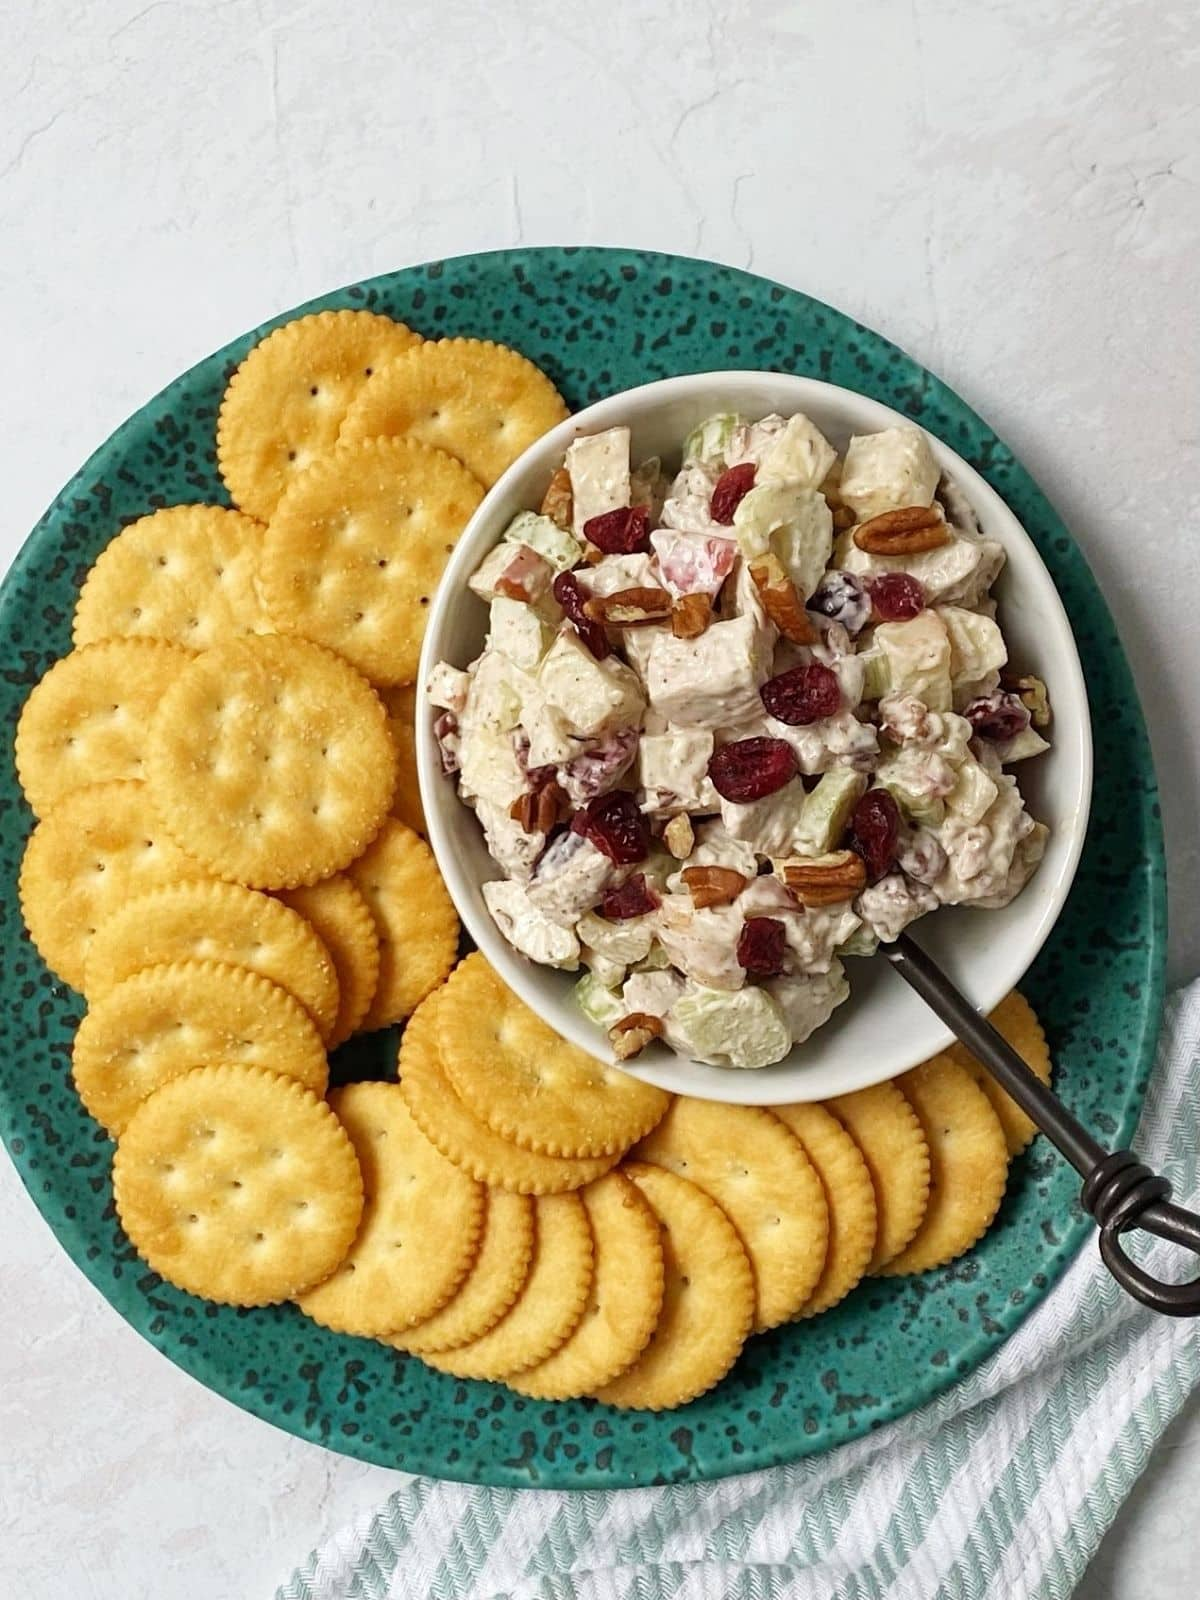 chicken salad with crackers on a plate.